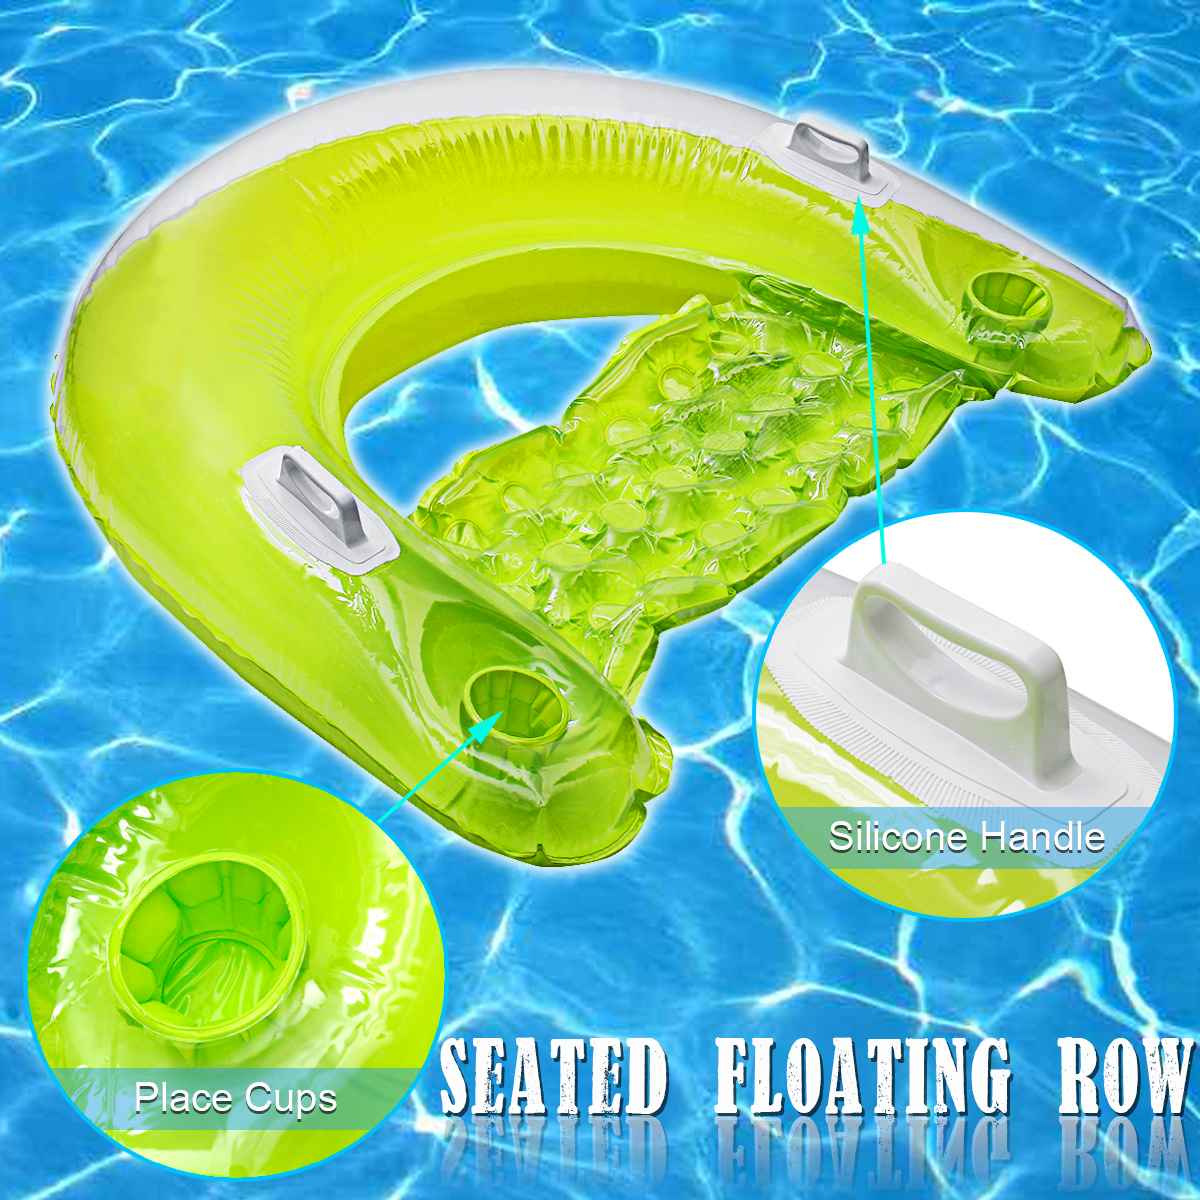 Ride-On Air Mattress Swimming Ring Seated Row Luxury Inflatable Floating Row Adult Pool Party Swimming Floating Bed Water